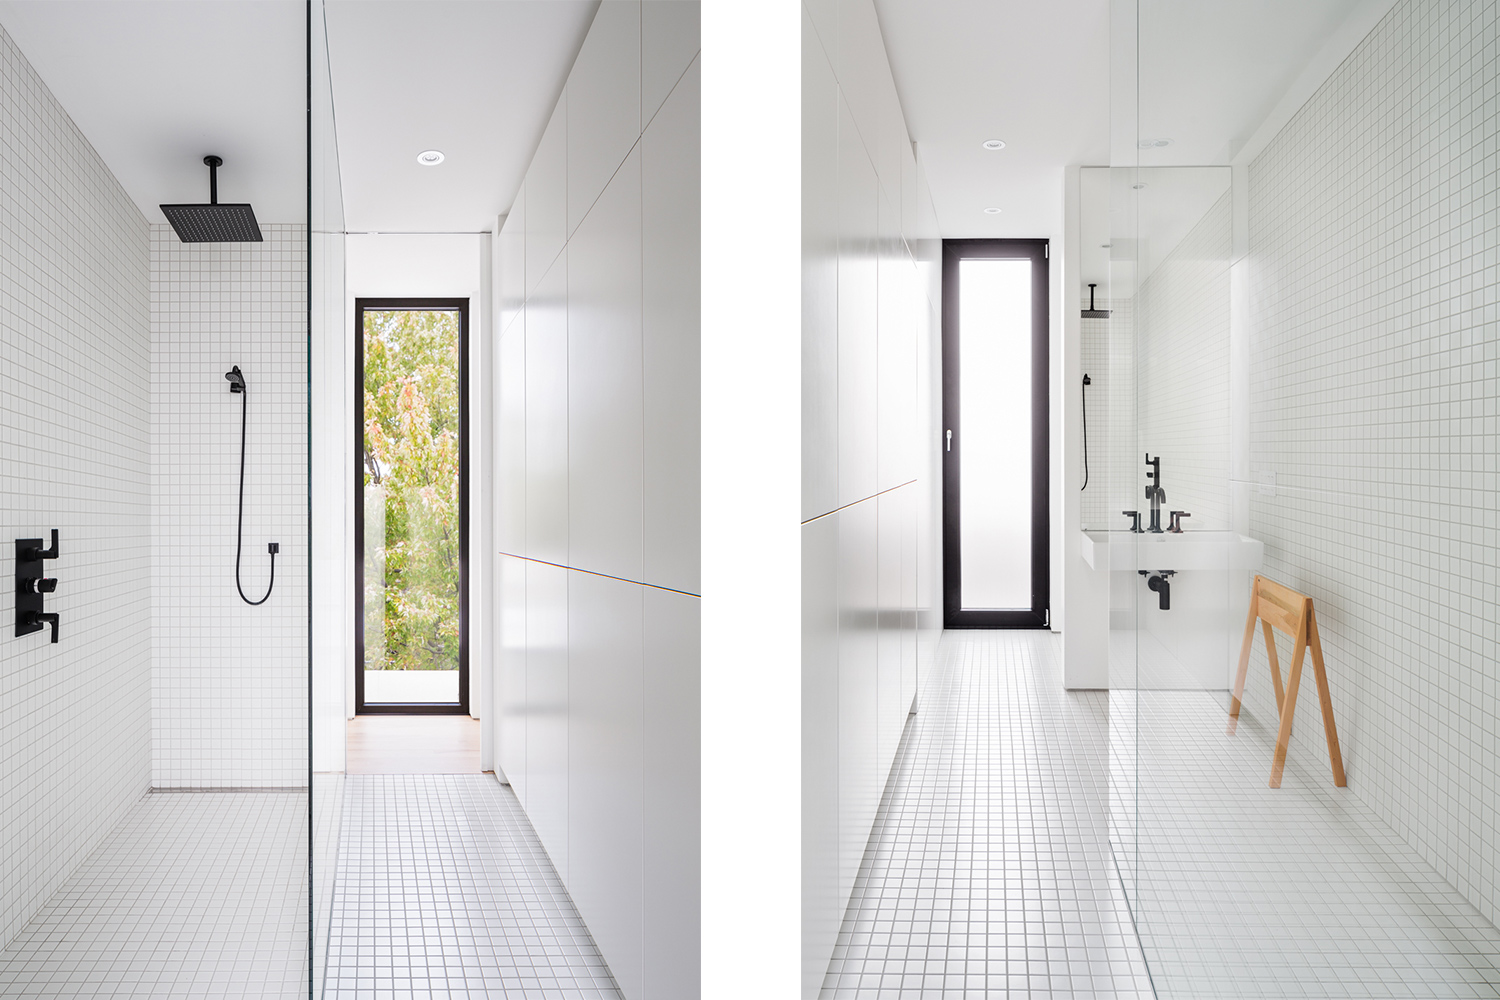 New shower with linear drain (Italian shower type) with wall and 2x2 white mosaic floor. Black taps, ceiling shower head. Built-in storage wall. Natural light